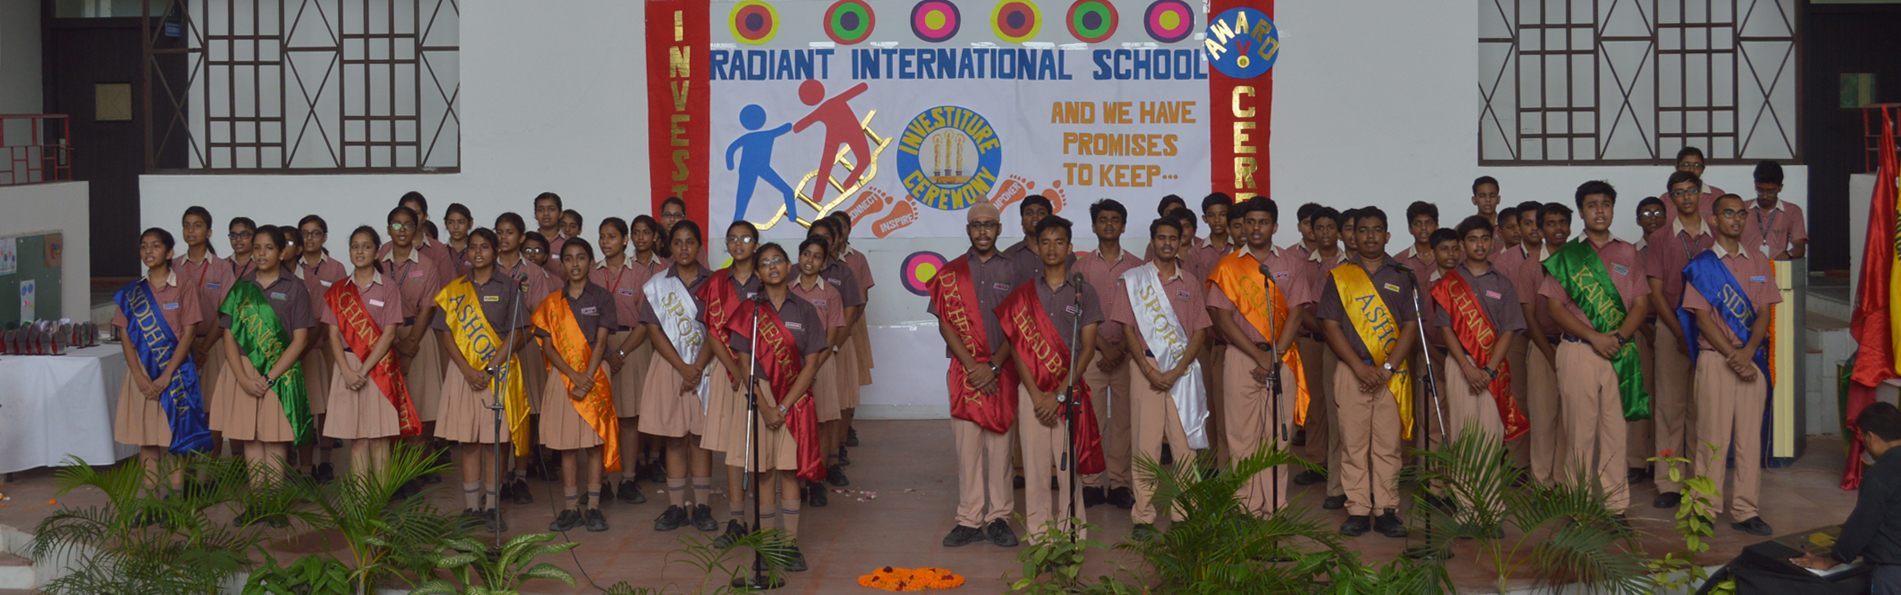 ryan international school chennai